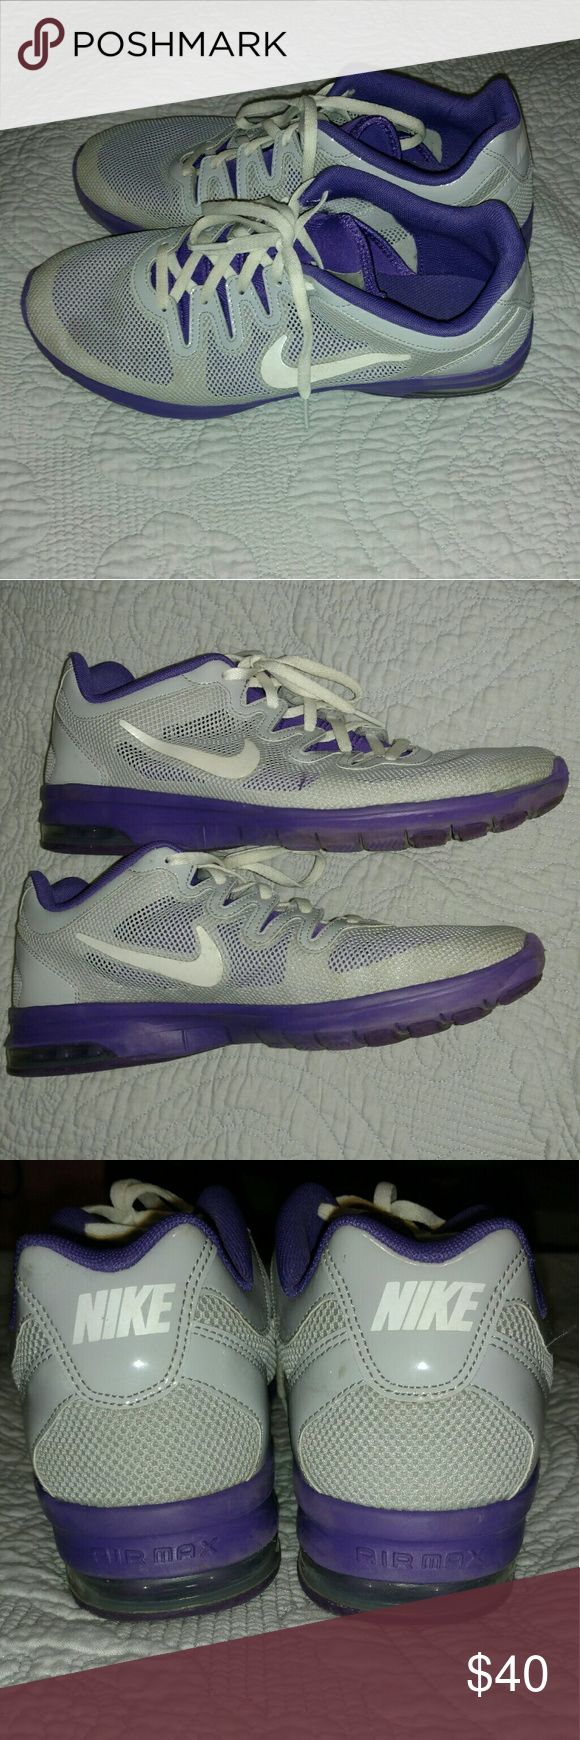 Purple and grey Nike Air Max team travel shoes Worn during one season of College volleyball for travel to and from away games. Will wash soles before sending. Nike Shoes Sneakers